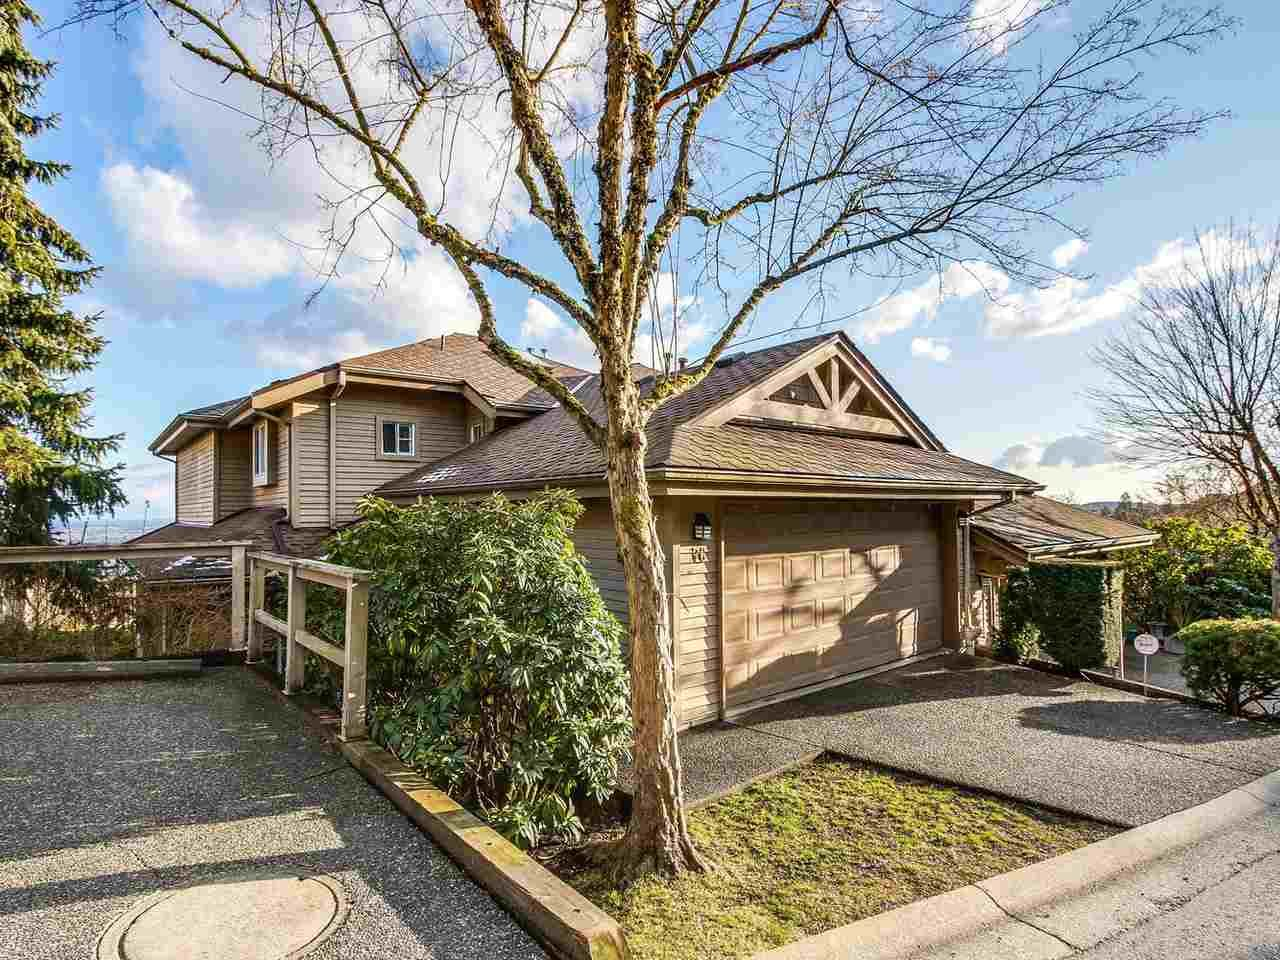 Main Photo: 76 2979 PANORAMA DRIVE in Coquitlam: Westwood Plateau Townhouse for sale : MLS®# R2141709